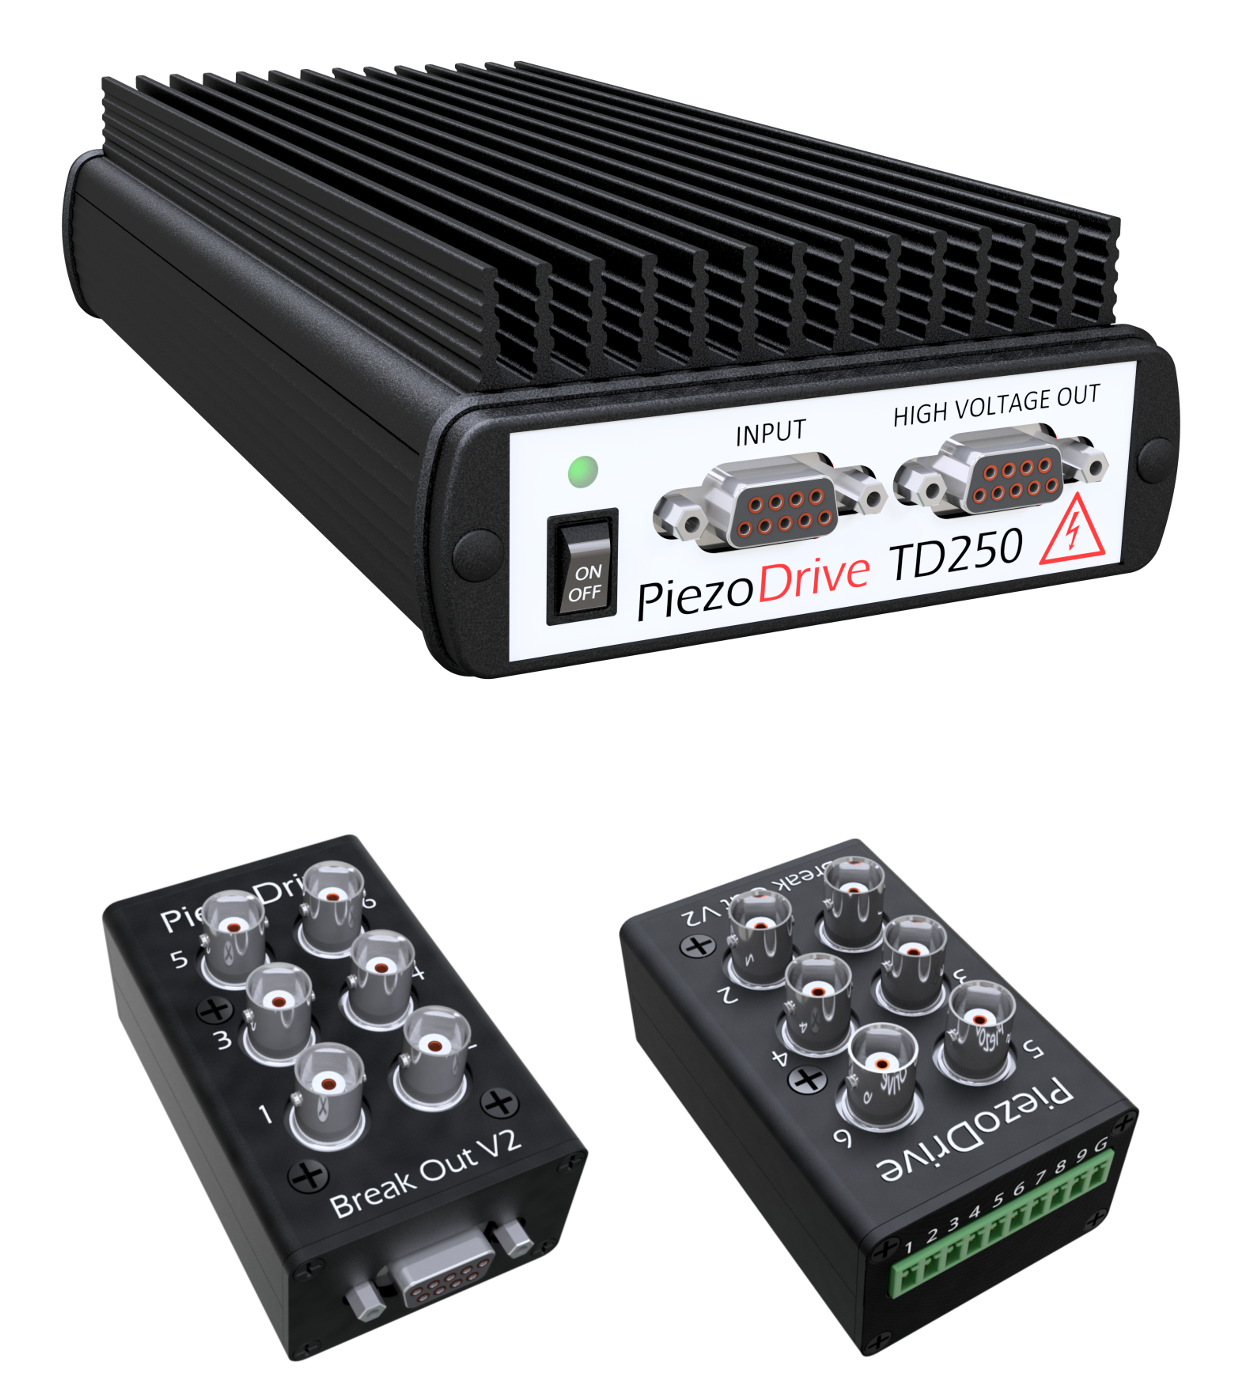 TD250 Amplifier and Breakout Boxes